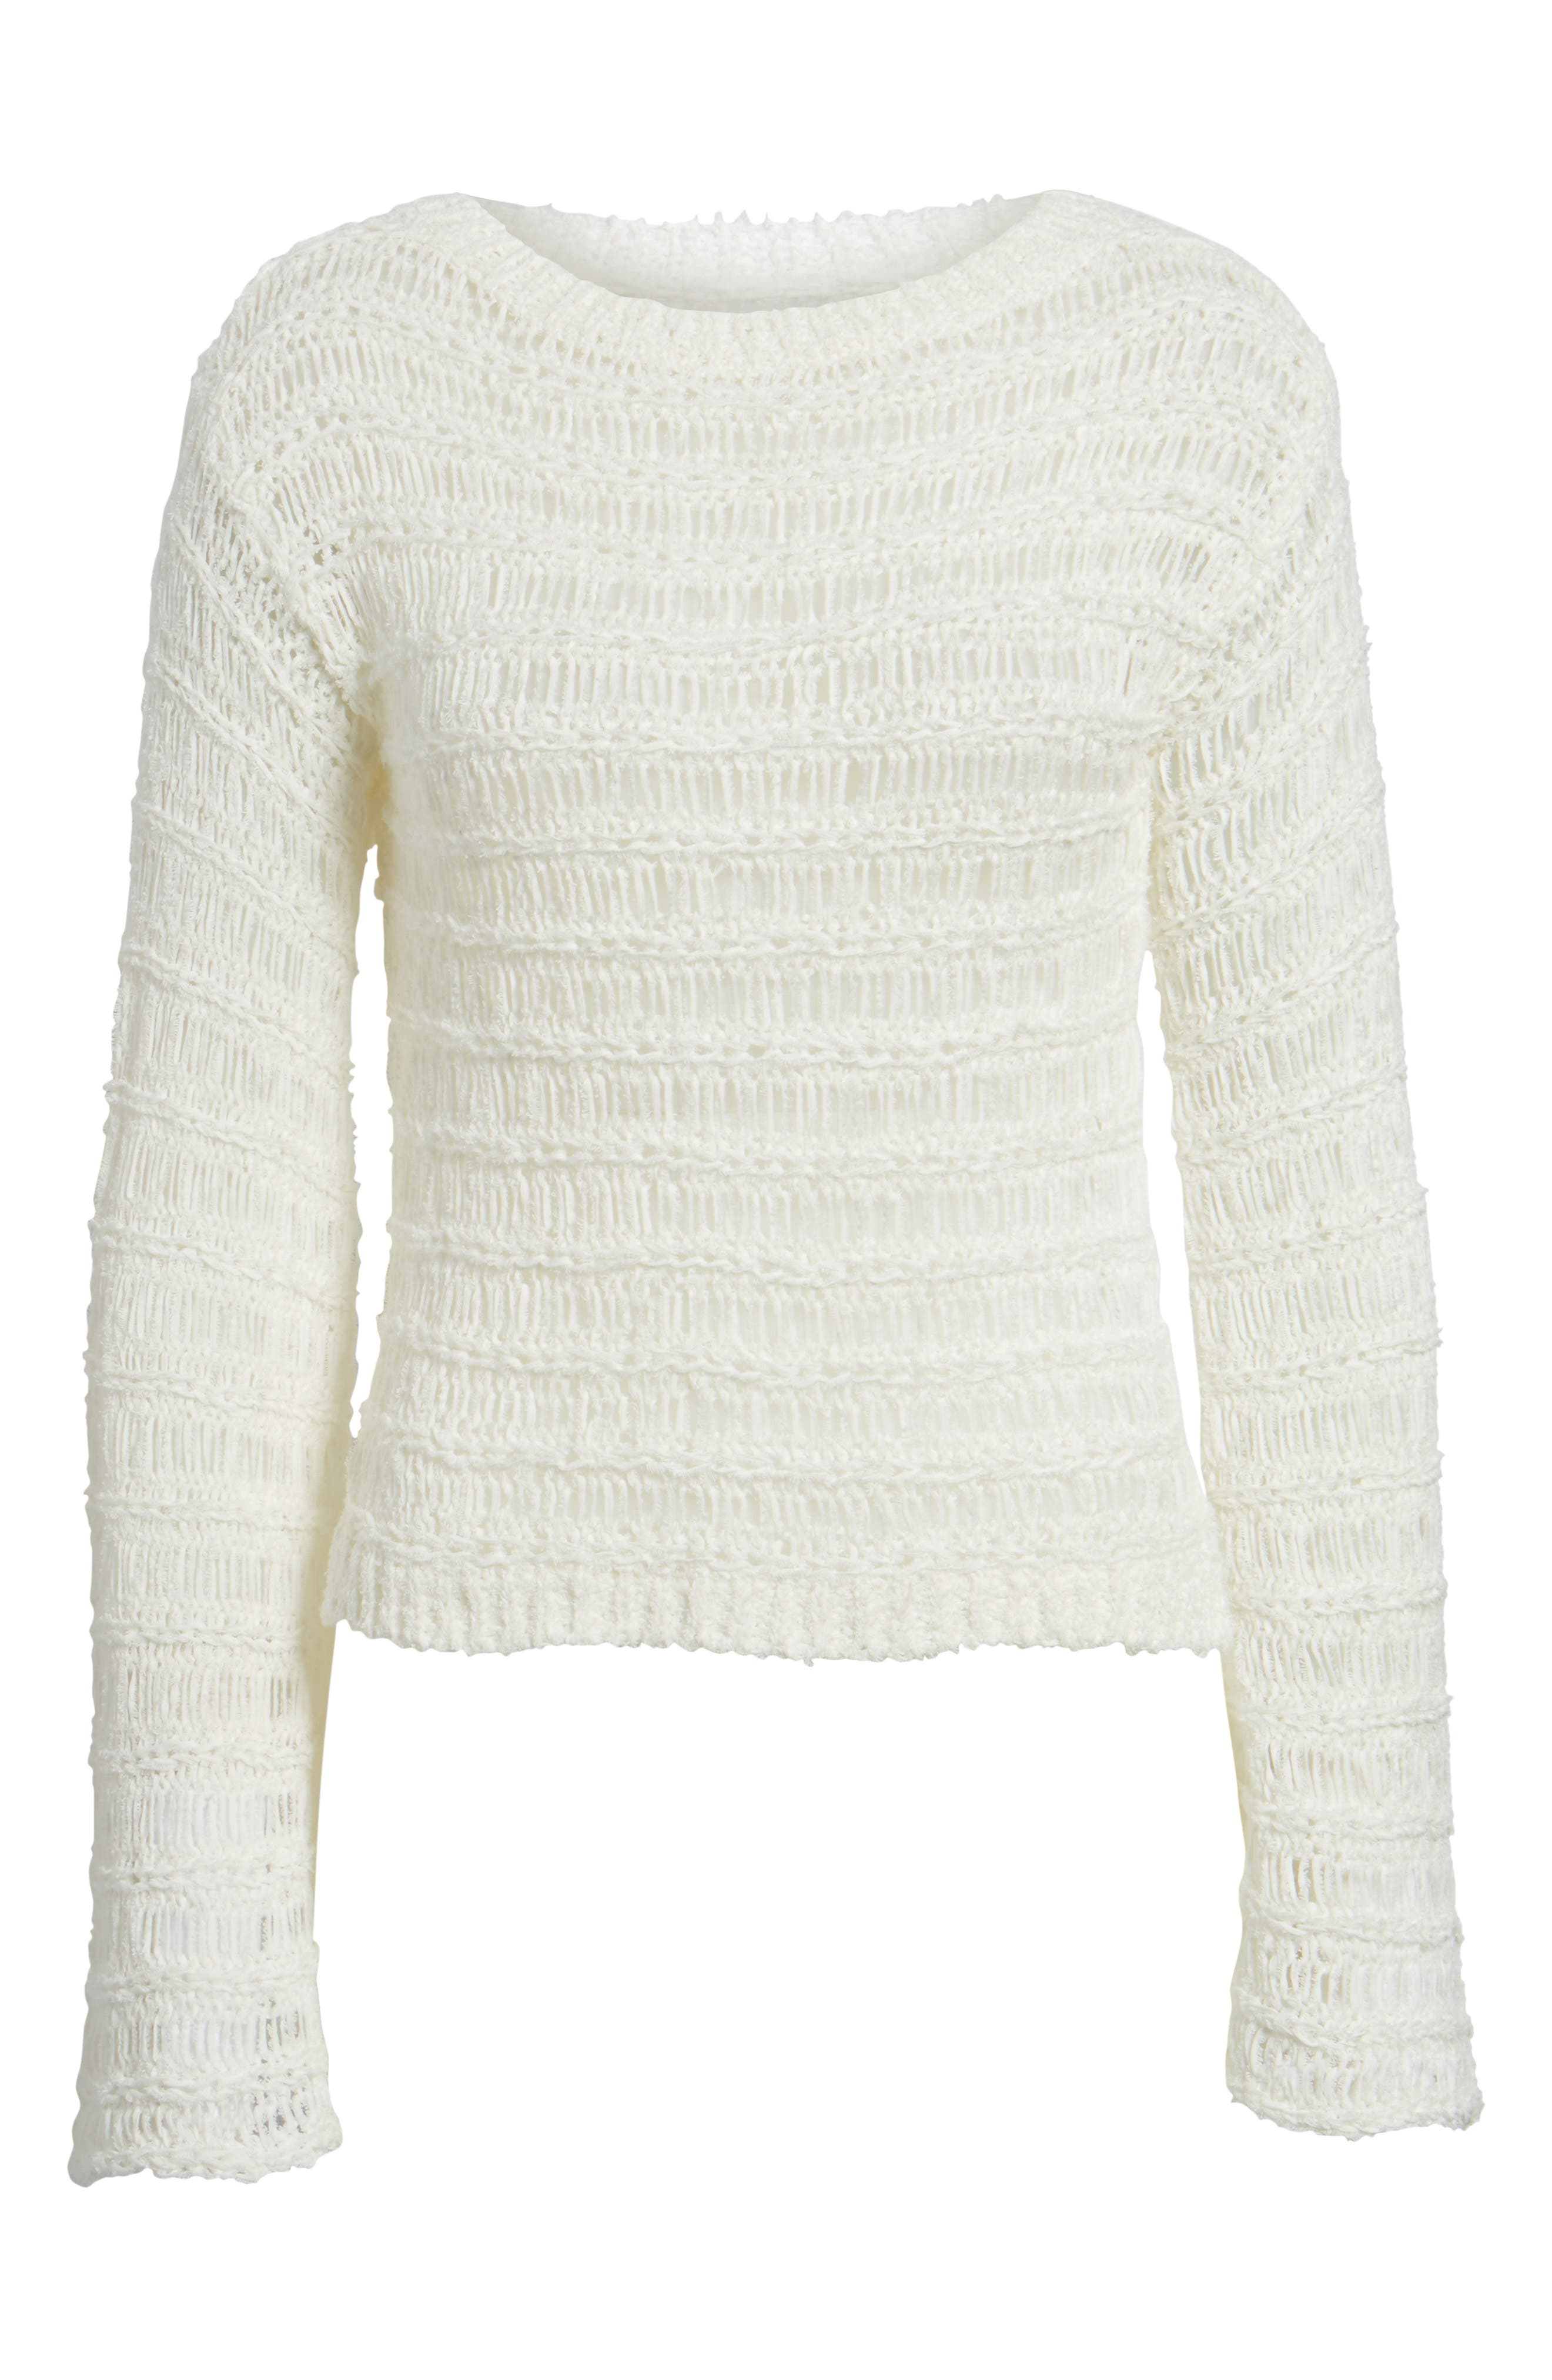 Ladder Stitch Sweater,                             Alternate thumbnail 6, color,                             900